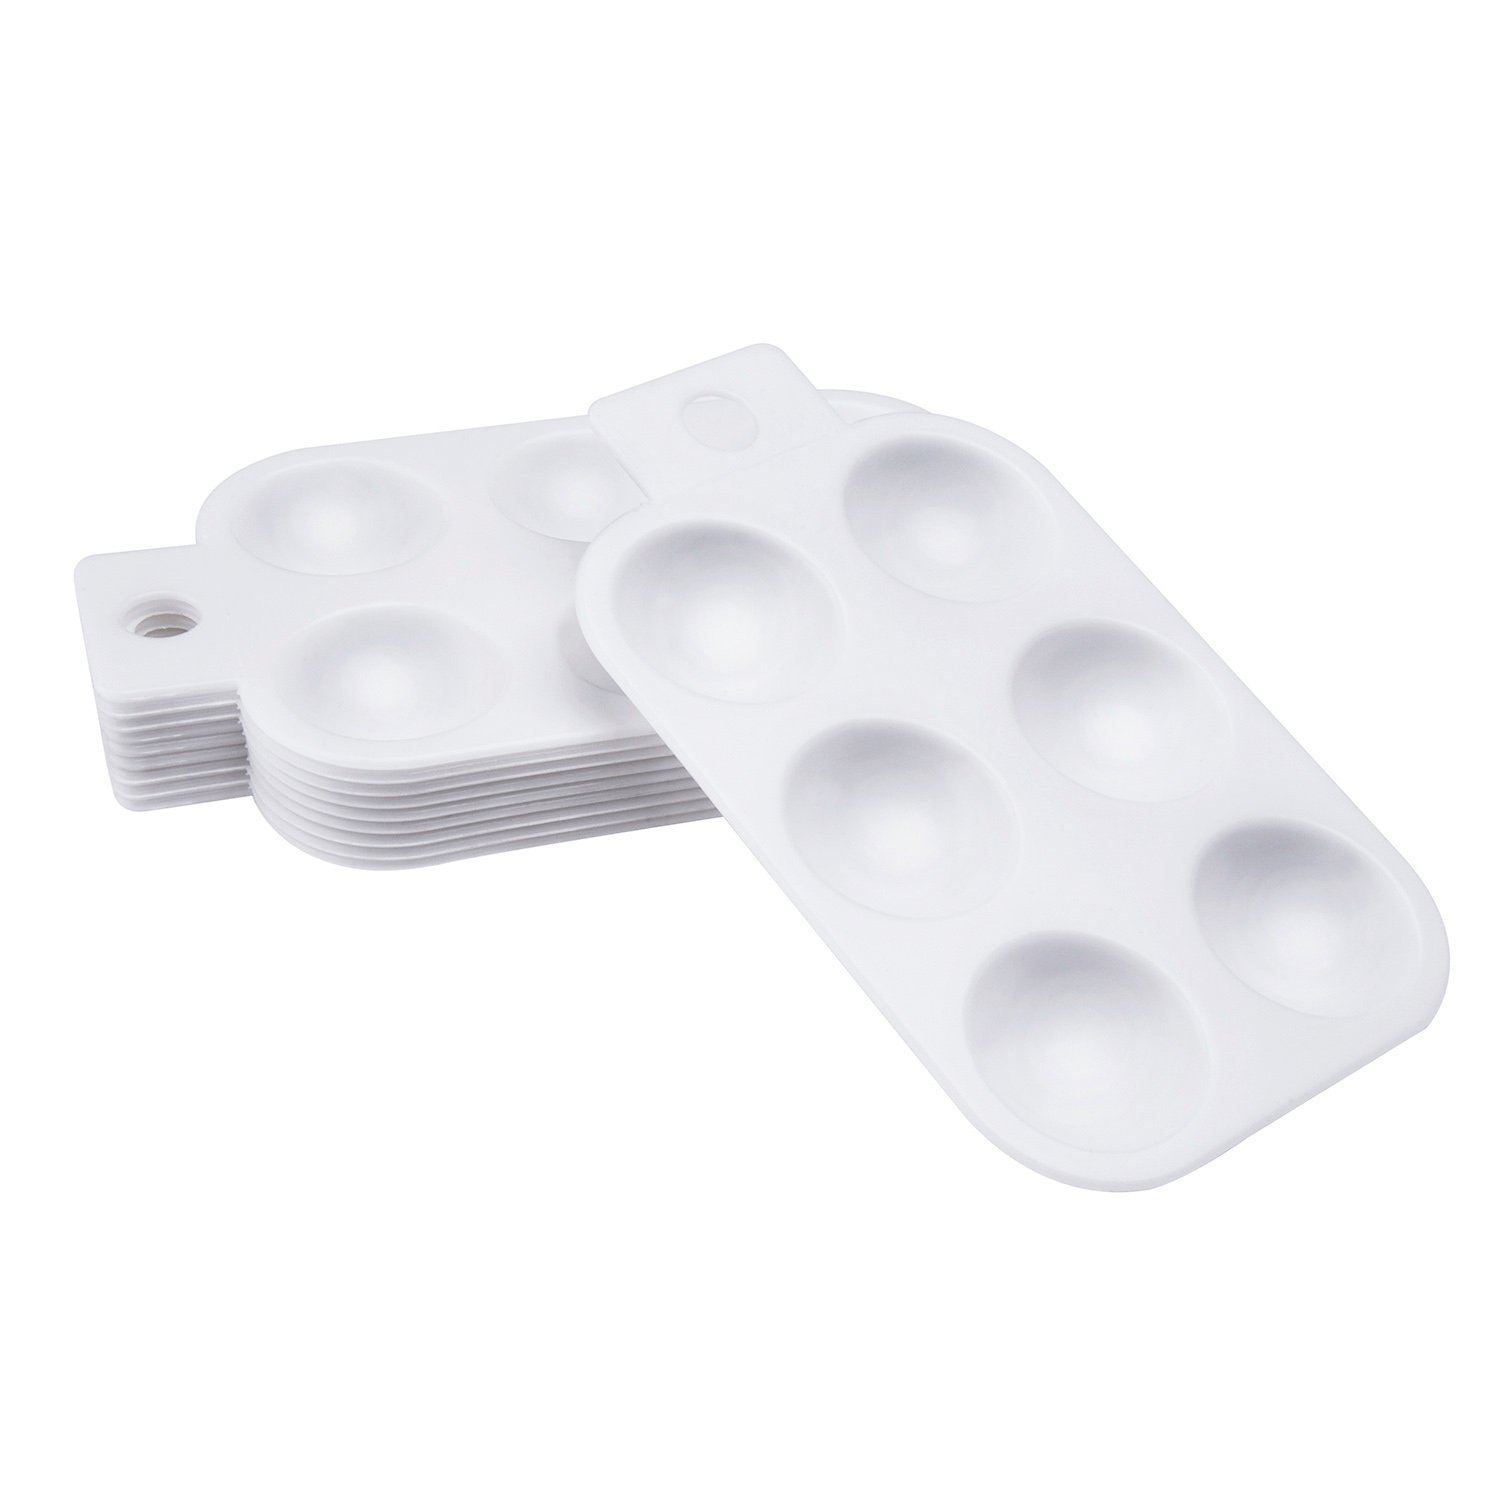 10 Pieces Plastic Watercolor Oil Palette Painting Tray with Hand Shank 6 Well Rectangular, White Outus